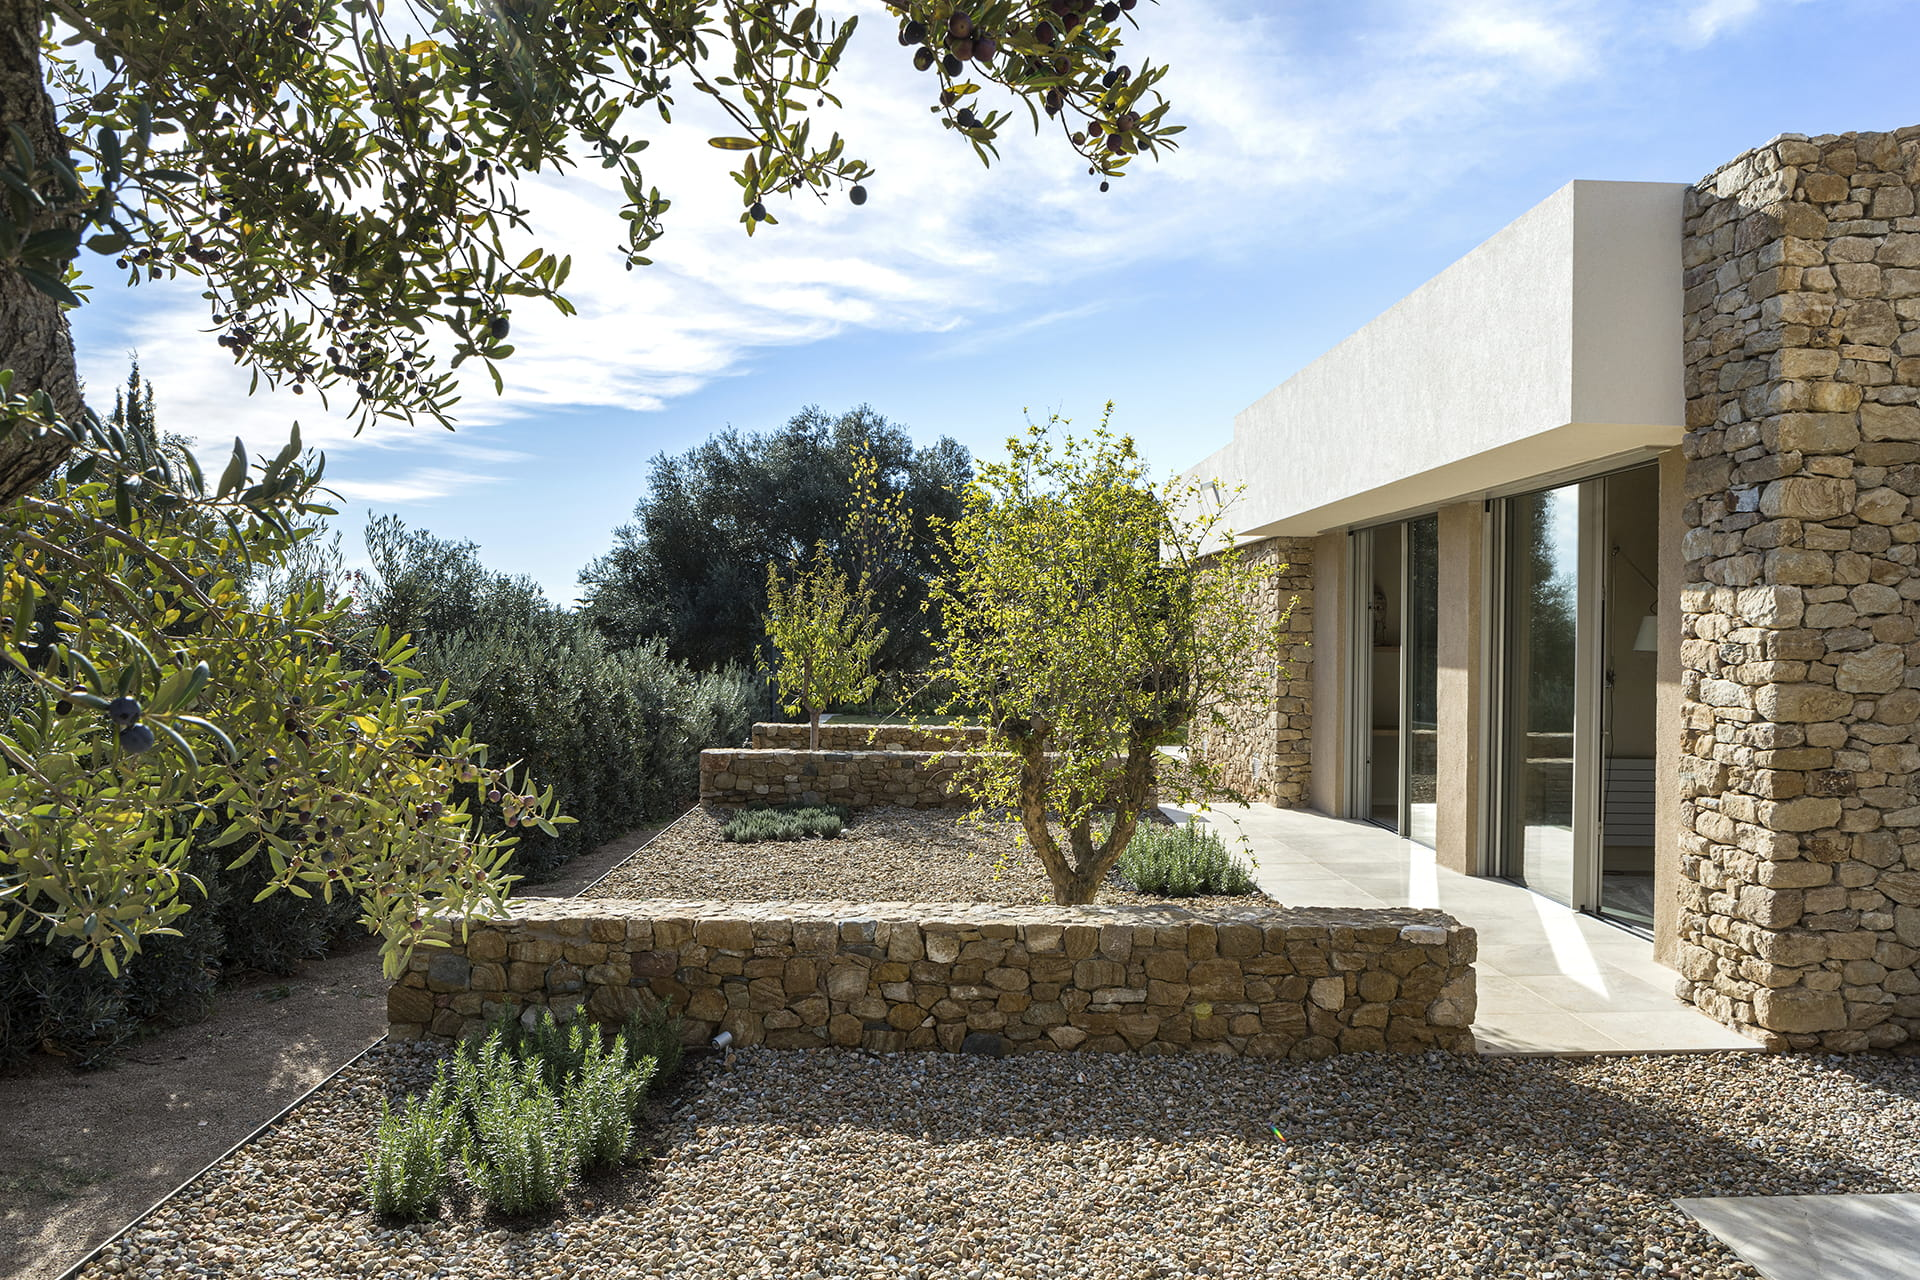 Outdoor contemplative courtyard with stone and vegetation